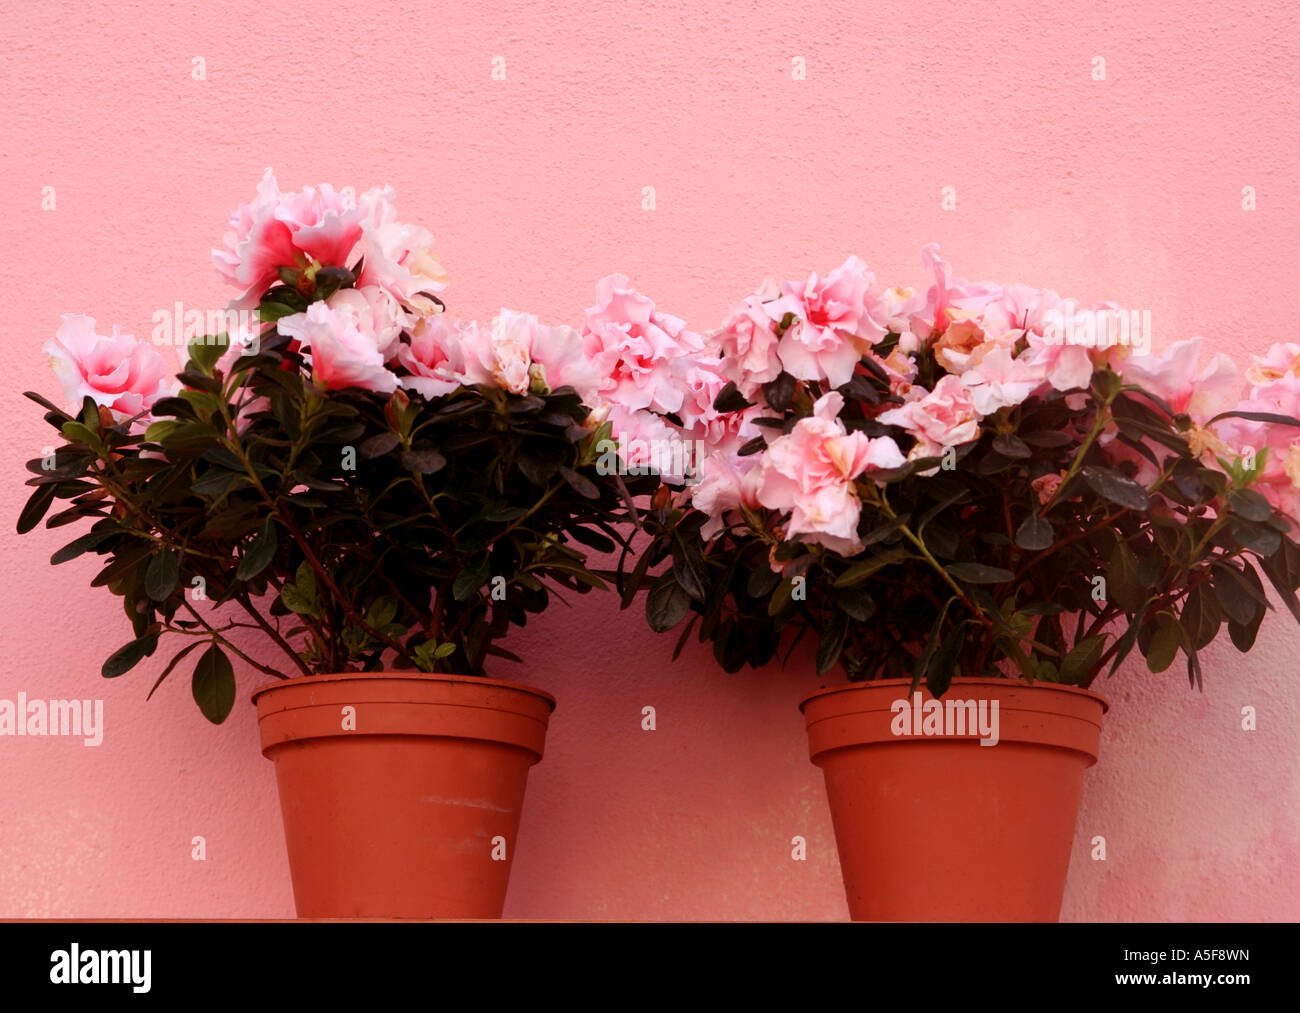 Two Identical Flowers Stock Photos & Two Identical Flowers Stock ...